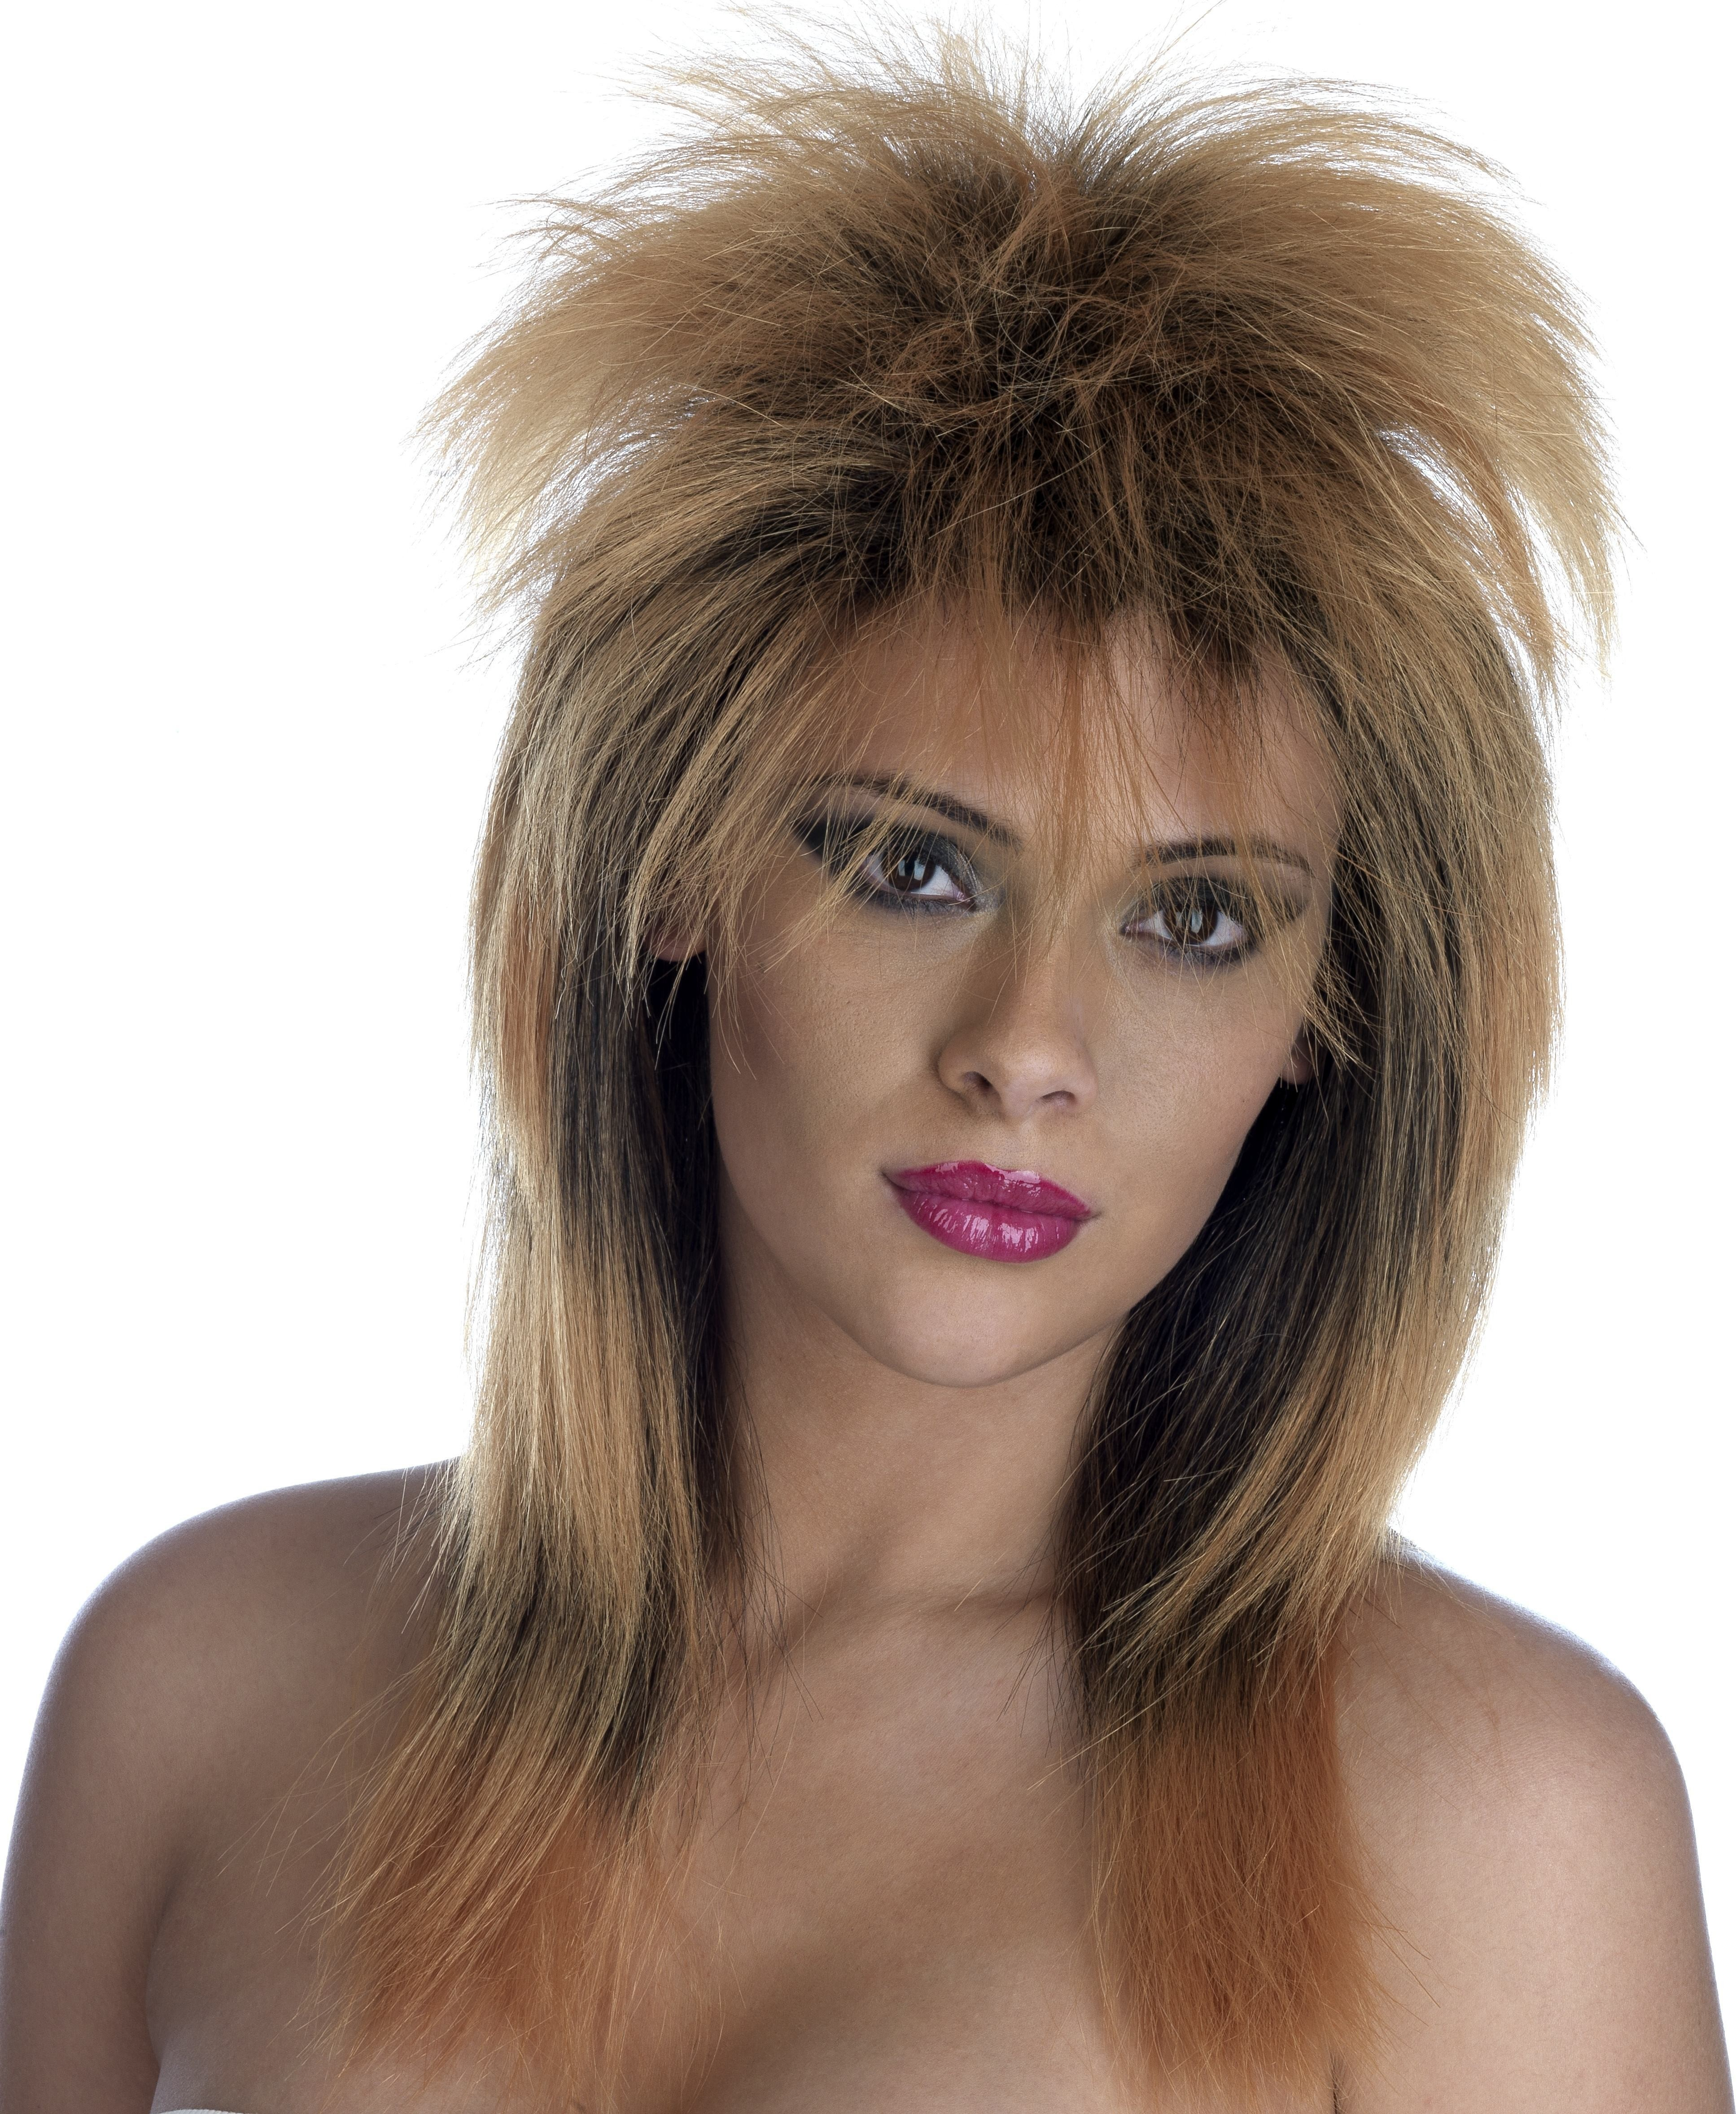 Tina Turner Ginger/Black  Spiky Wig (170G) One Size (Music)